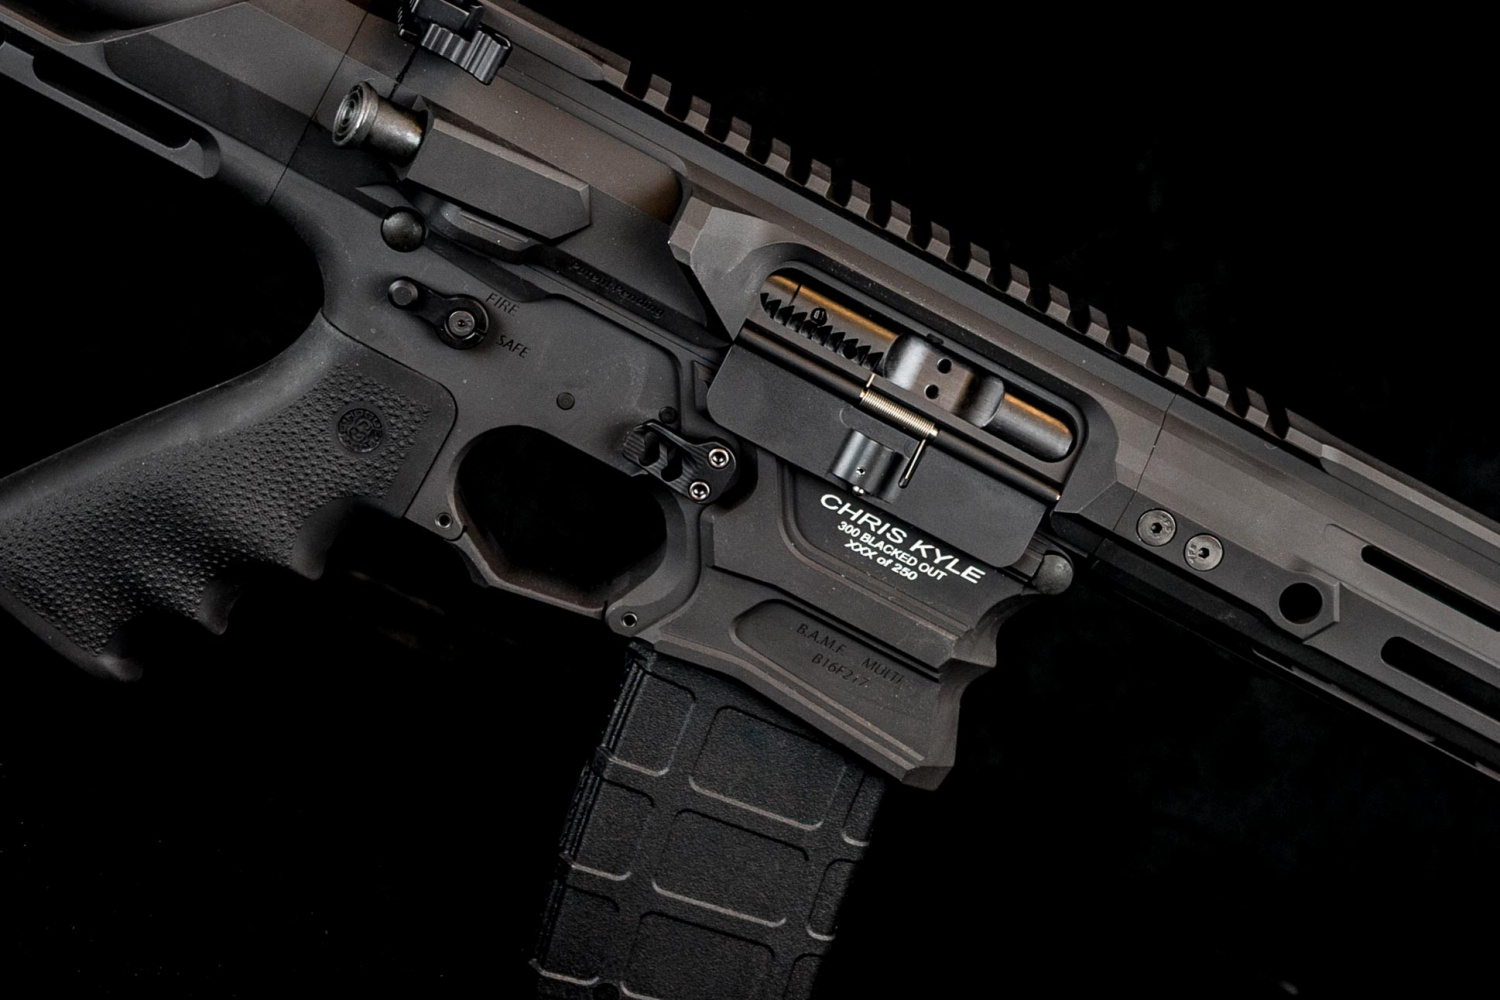 All of the rifles feature the Collection name, rifle name, and custom number. Image from T4 Photo